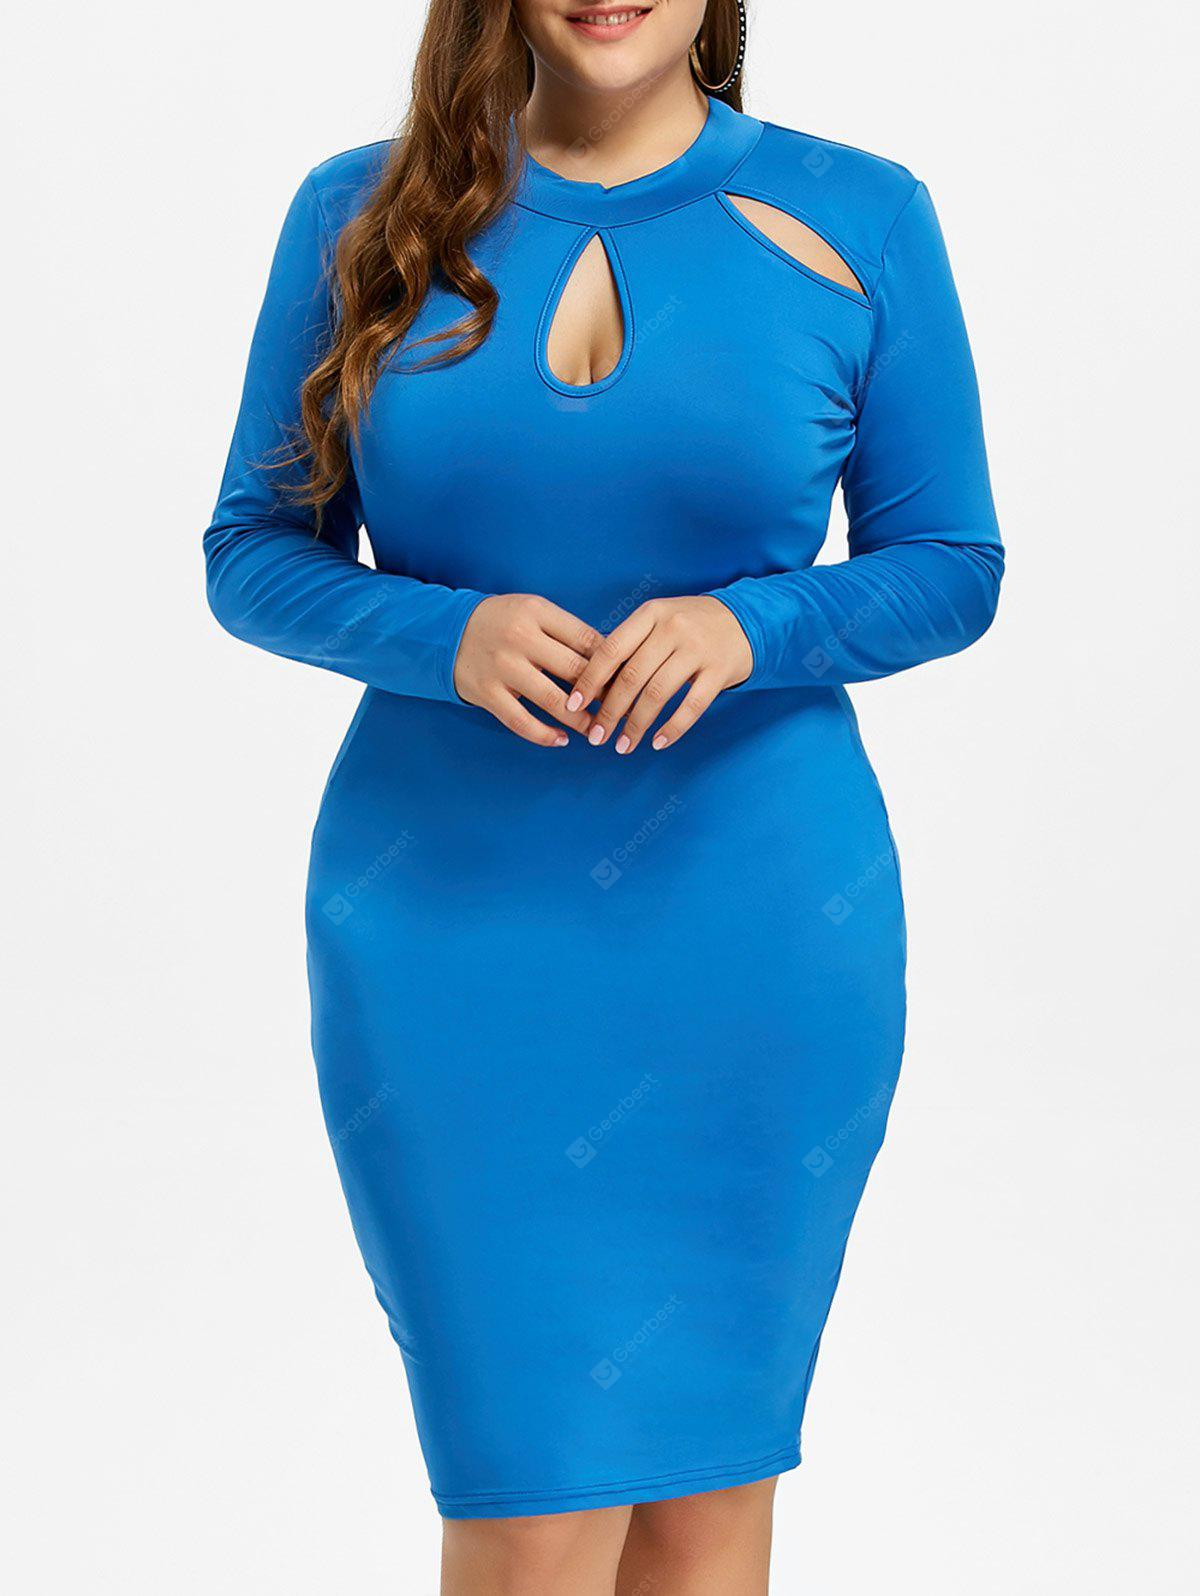 BLUE 3XL Plus Size Sheath Dress with Long Sleeves